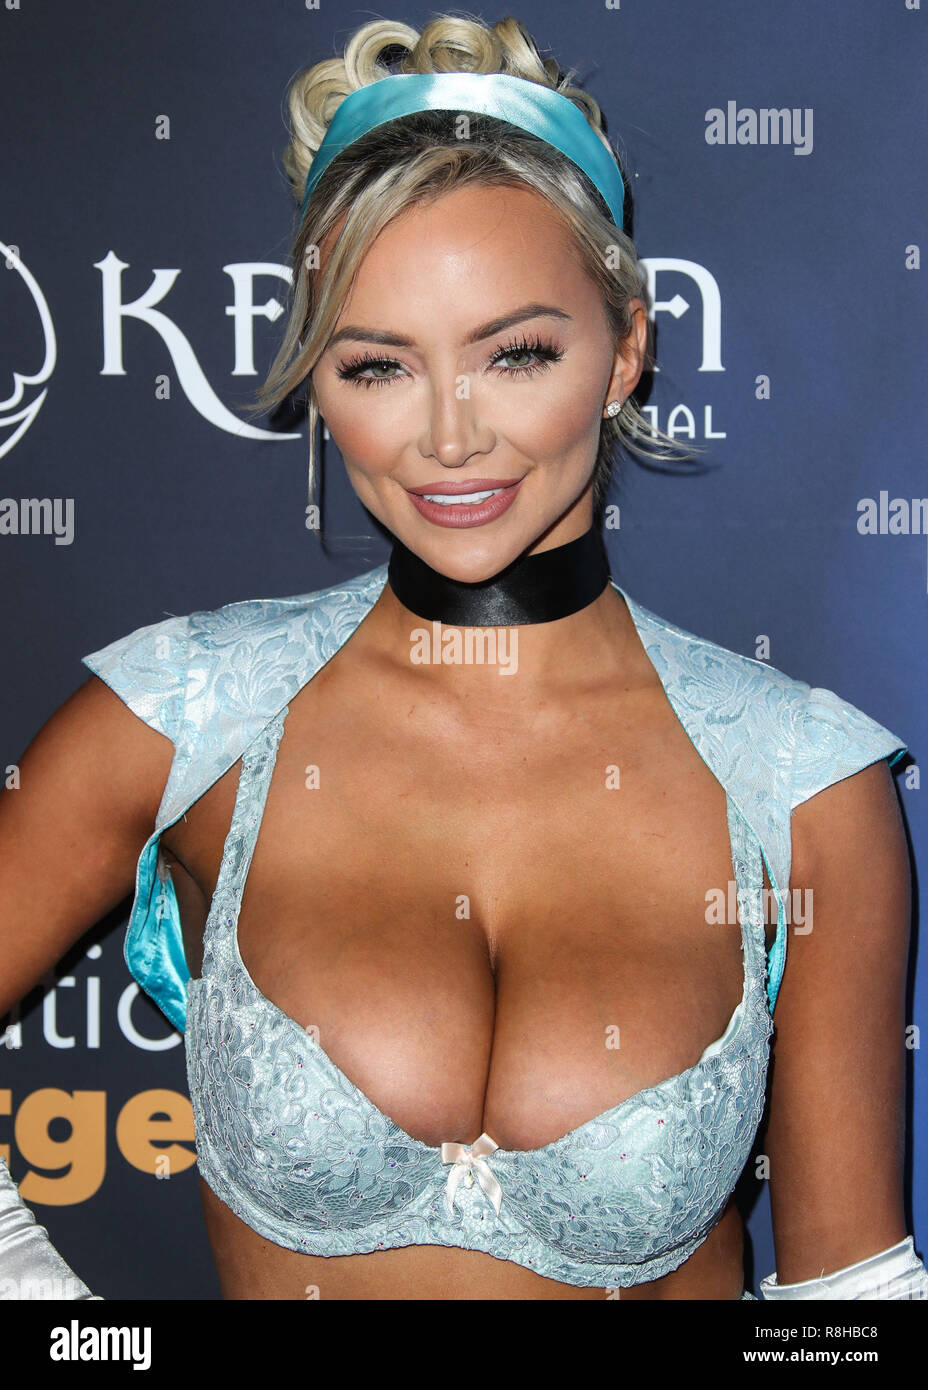 Lindsey Pelas United States Lindsey Pelas United States new pictures